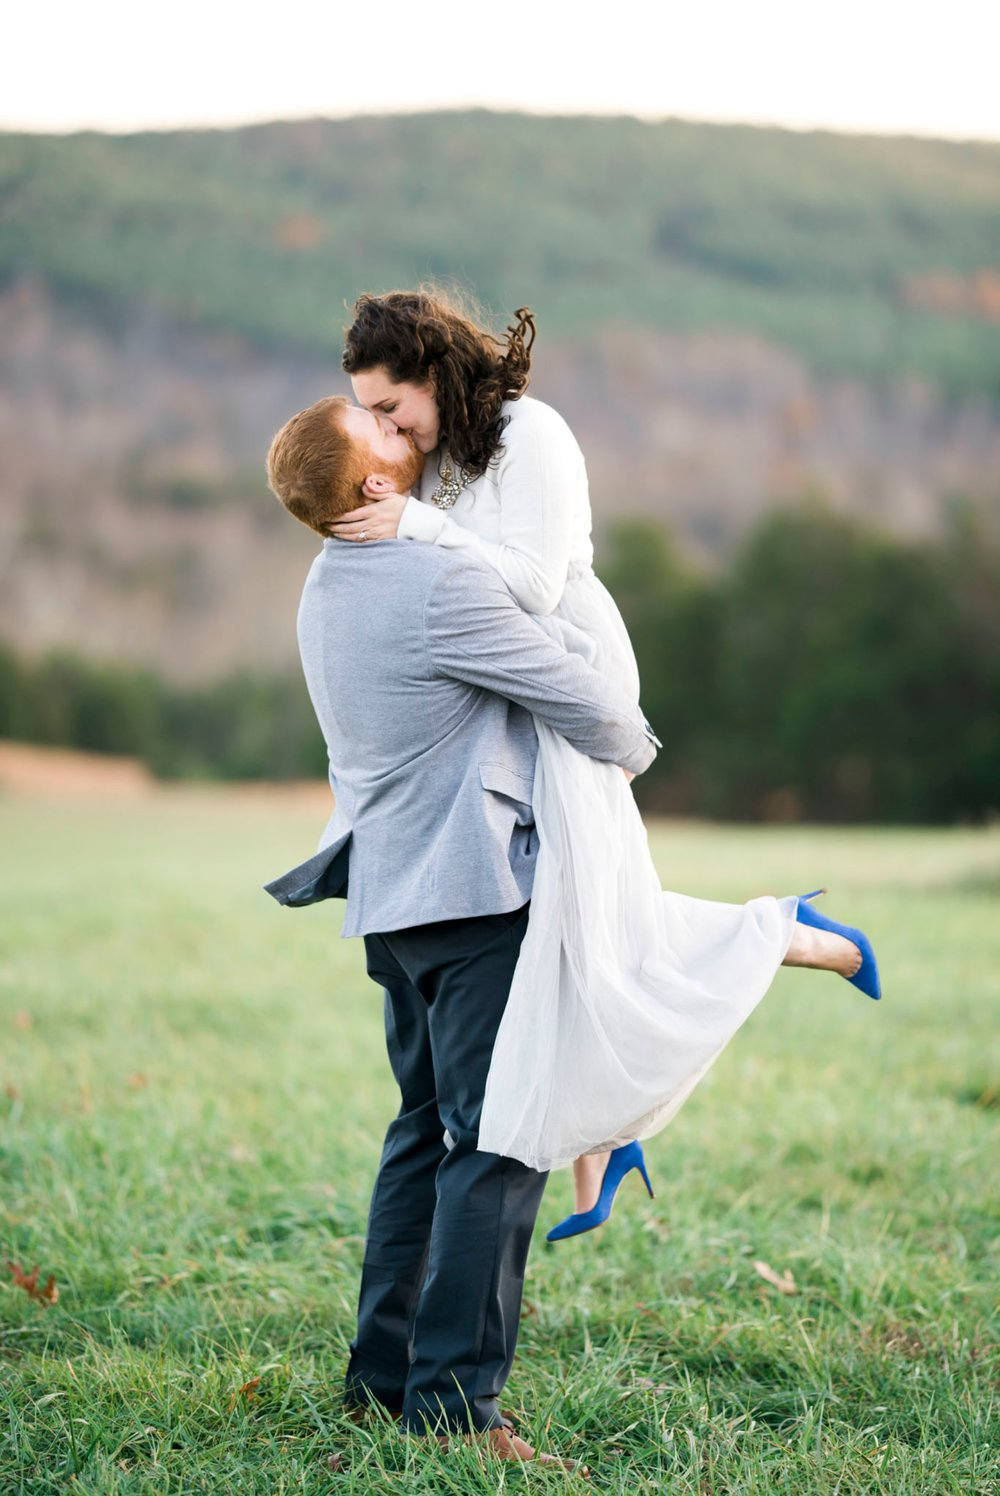 SorellaFarms_EngagementSession_VirginiaweddingPhotographer 64.jpg